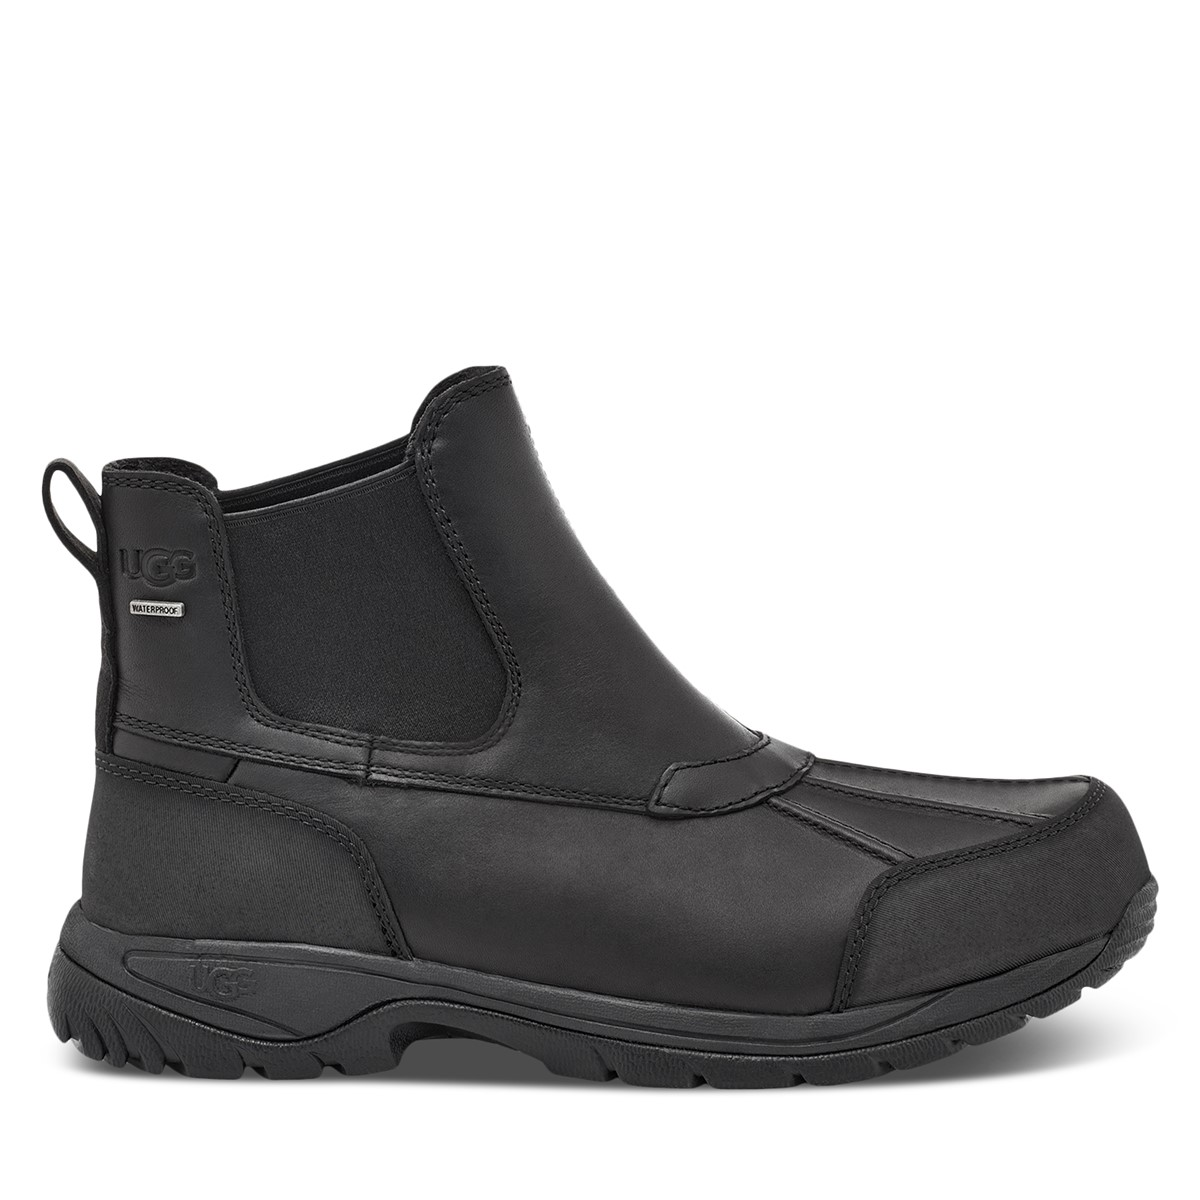 Men's Butte Chelsea Boots in Black